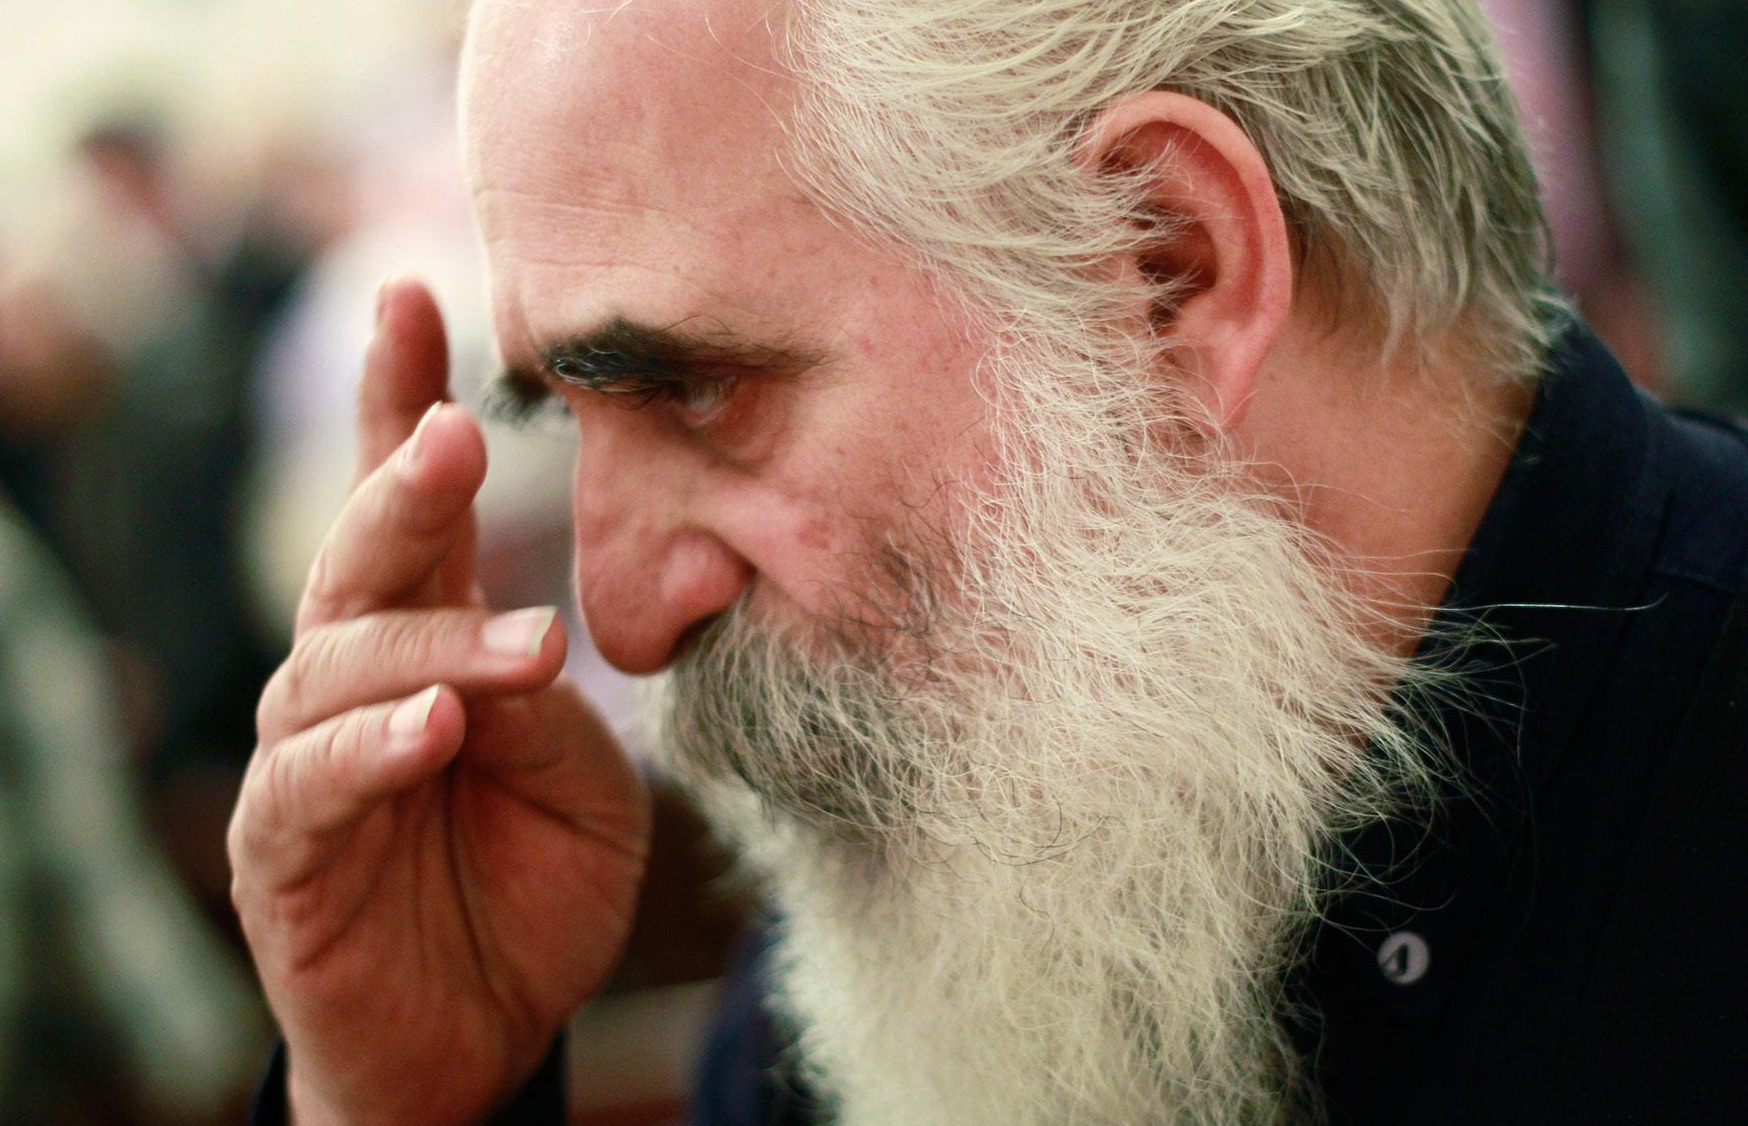 A Christian man prays at a New Year's mass at Saint Serkis church in Tehran, 2011. (Reuters photo: Morteza Nikoubazl)